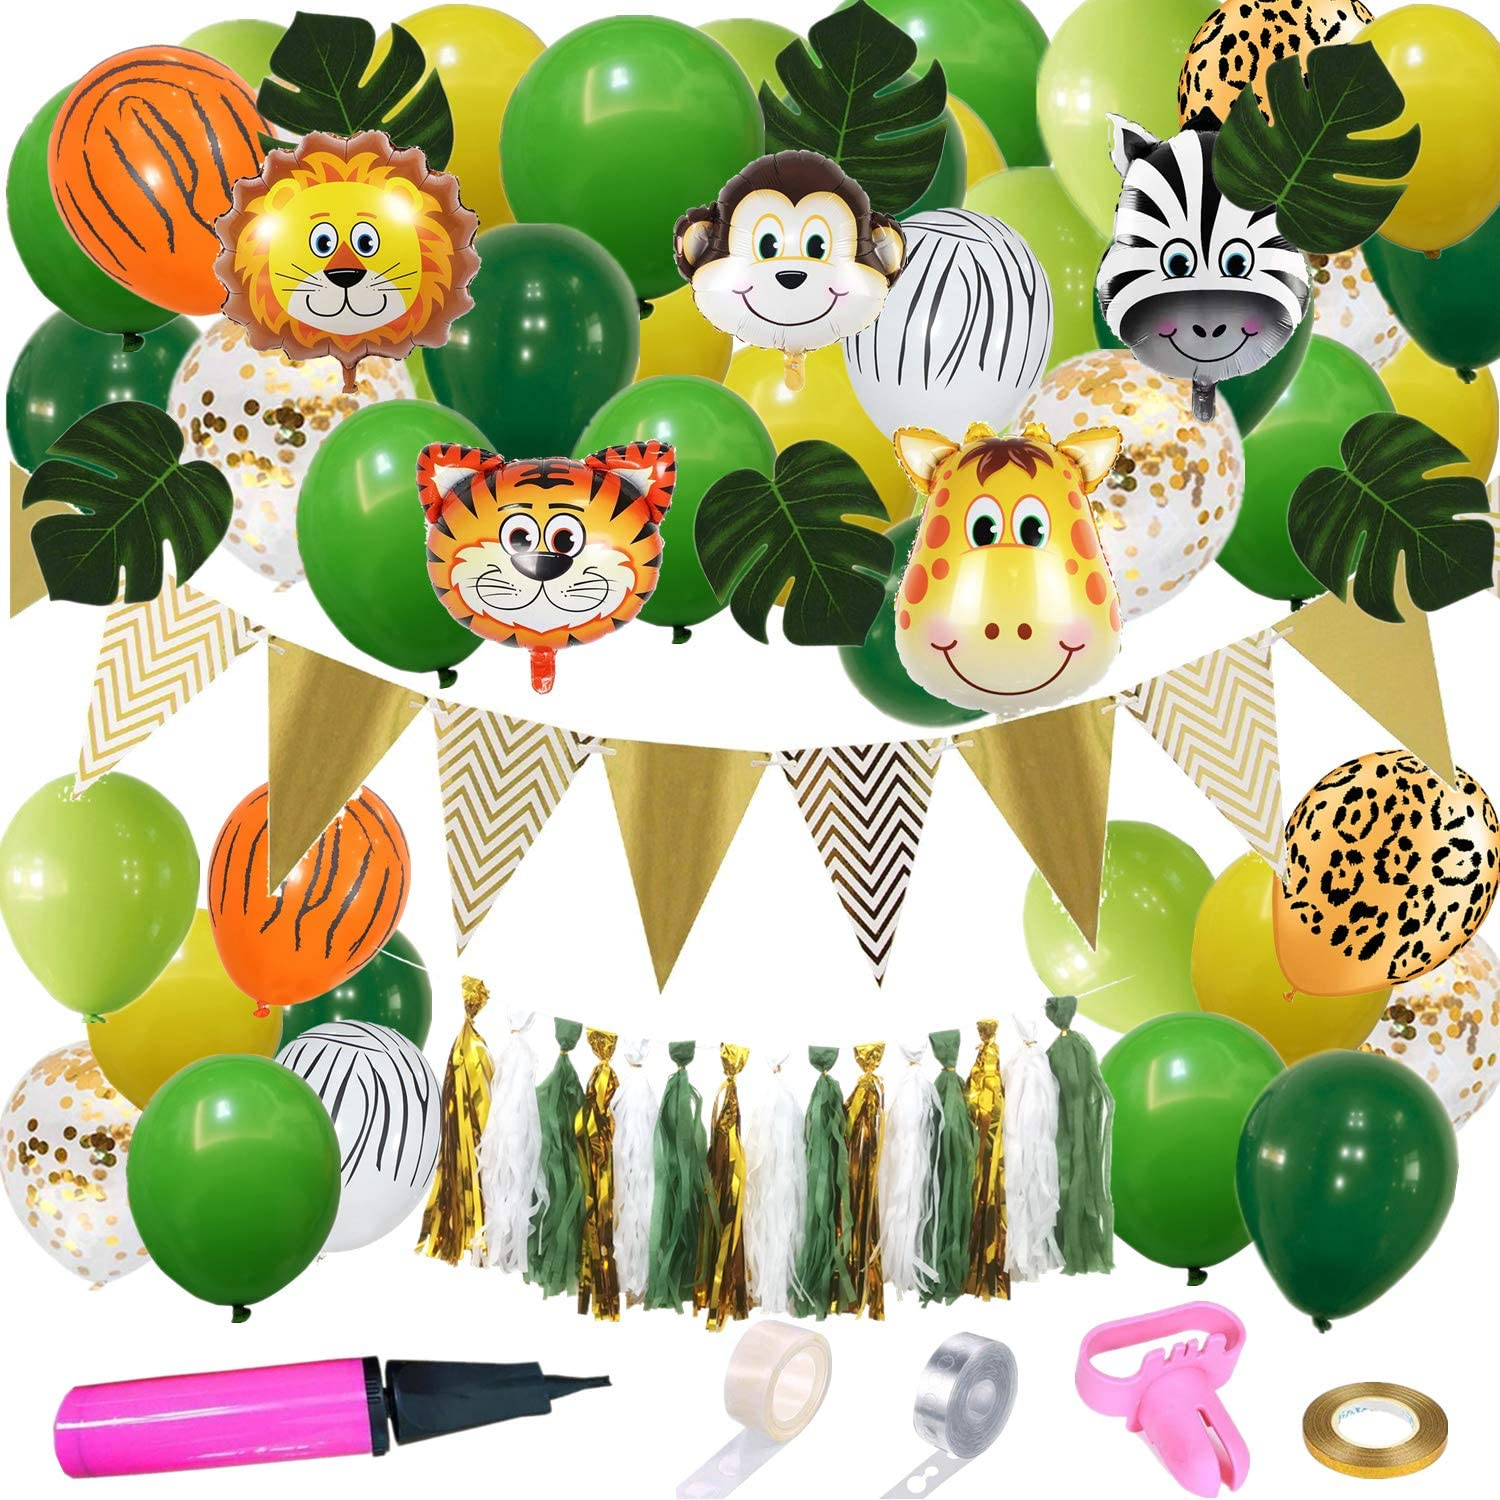 Jungle Safari Themed Party Decoration, Animals Party Supplies for Boys and Girls Birthday, Baby Shower Decoration Neutral, Animals Foil Balloons, Green and Gold Balloons Garland Kit, Paper Tassels, Palm Leaves, Gold Triangle Banners, Attached Tools